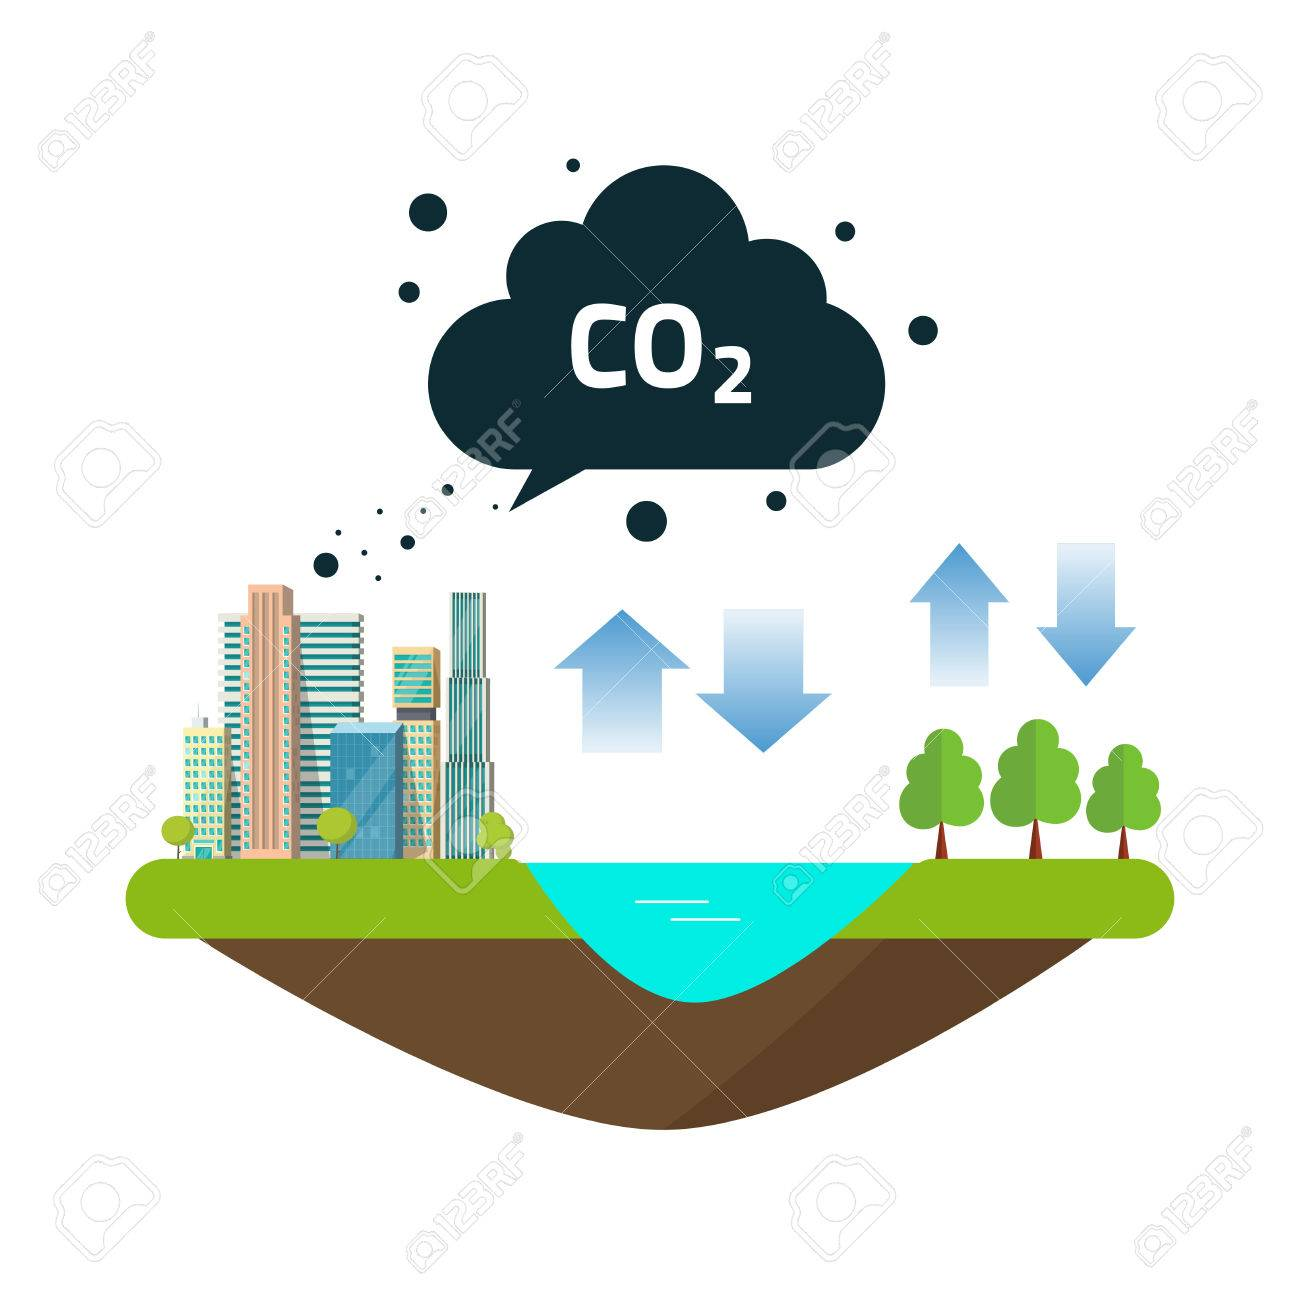 CO2 natural emissions carbon balance cycle between ocean source, city or town productions and forest. Concept of environmental problem, dioxide pollution issue, climate change vector illustration - 73378342